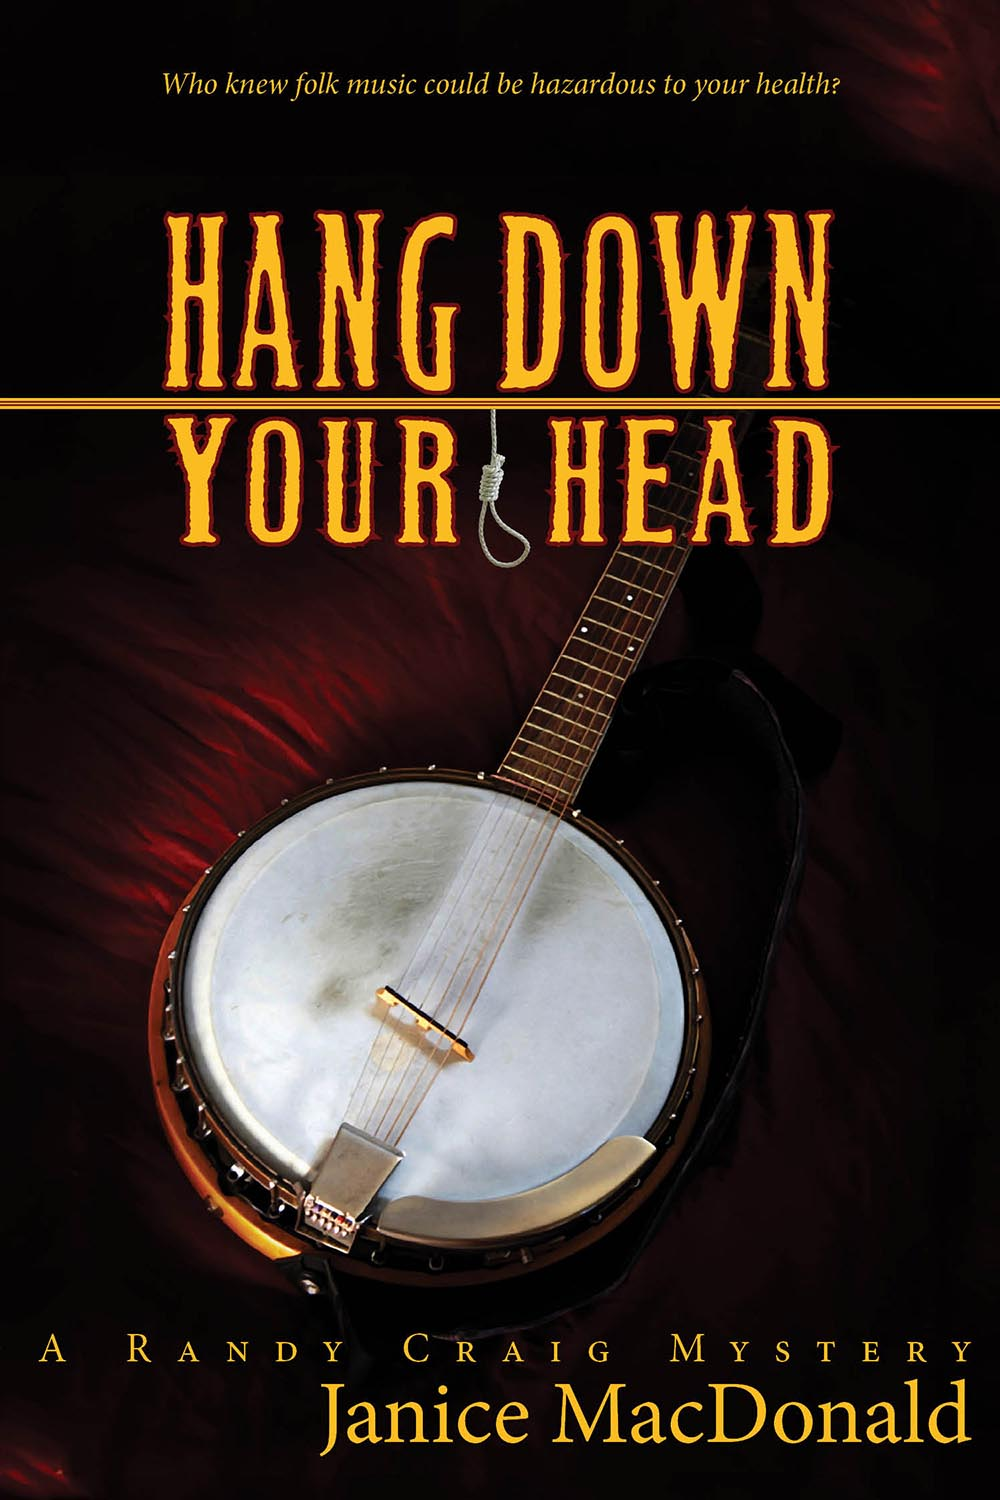 Hang Down Your Head by Janice MacDonald